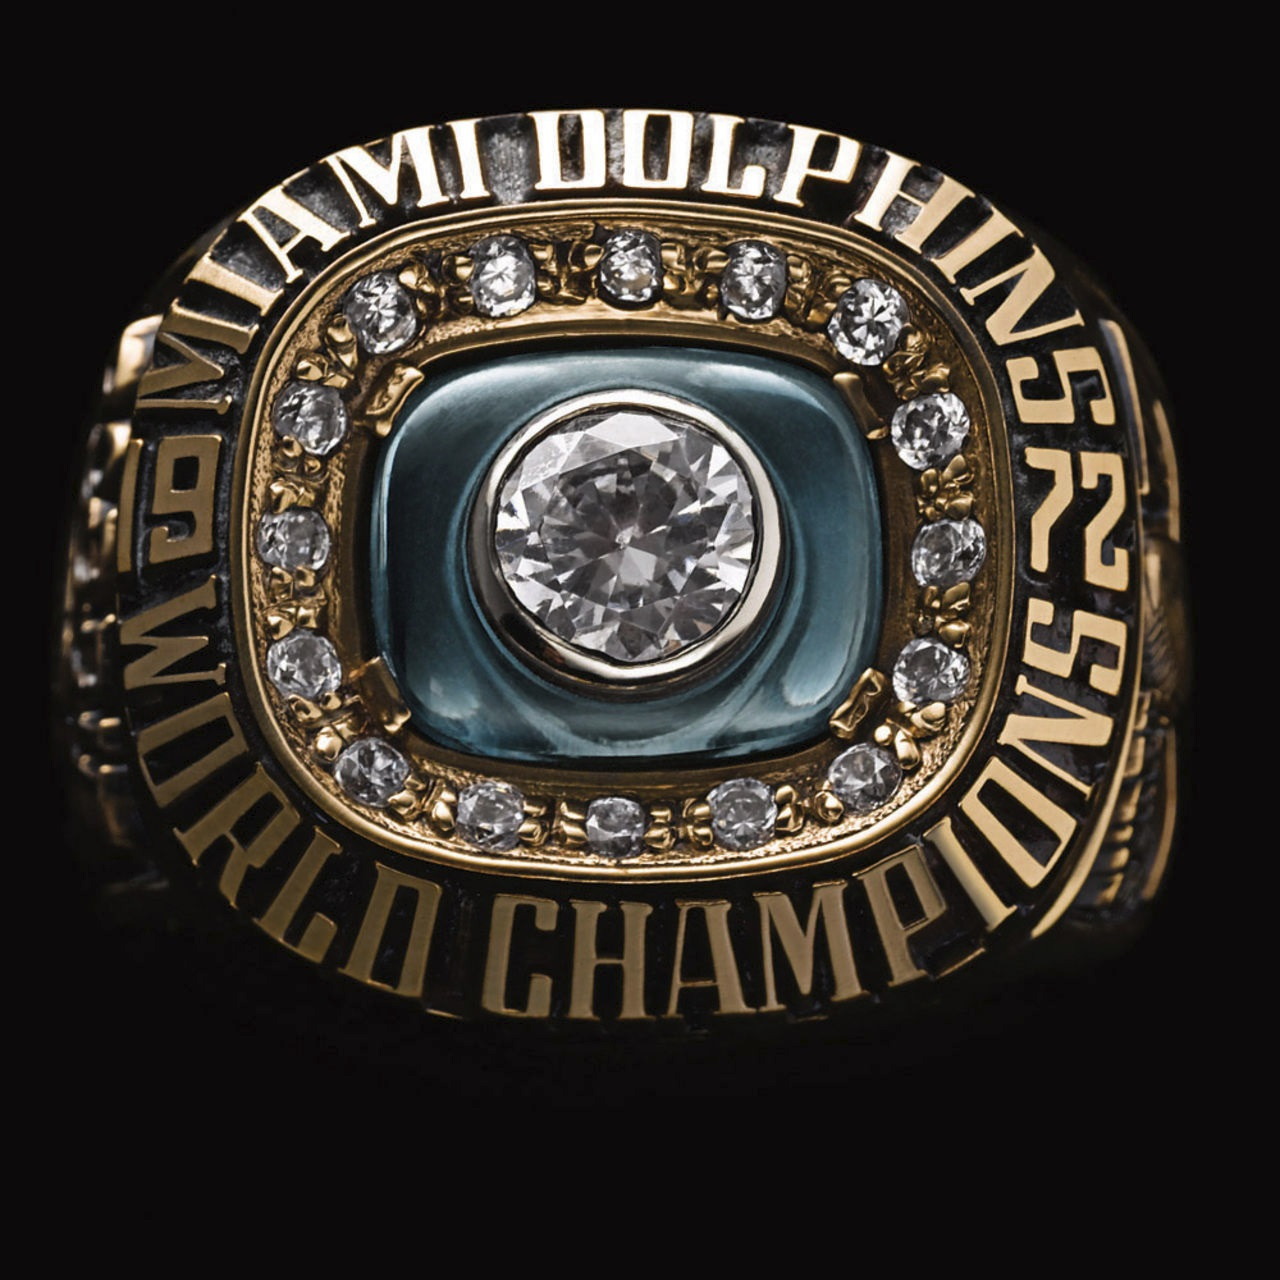 Miami Dolphins 1973 champions ring